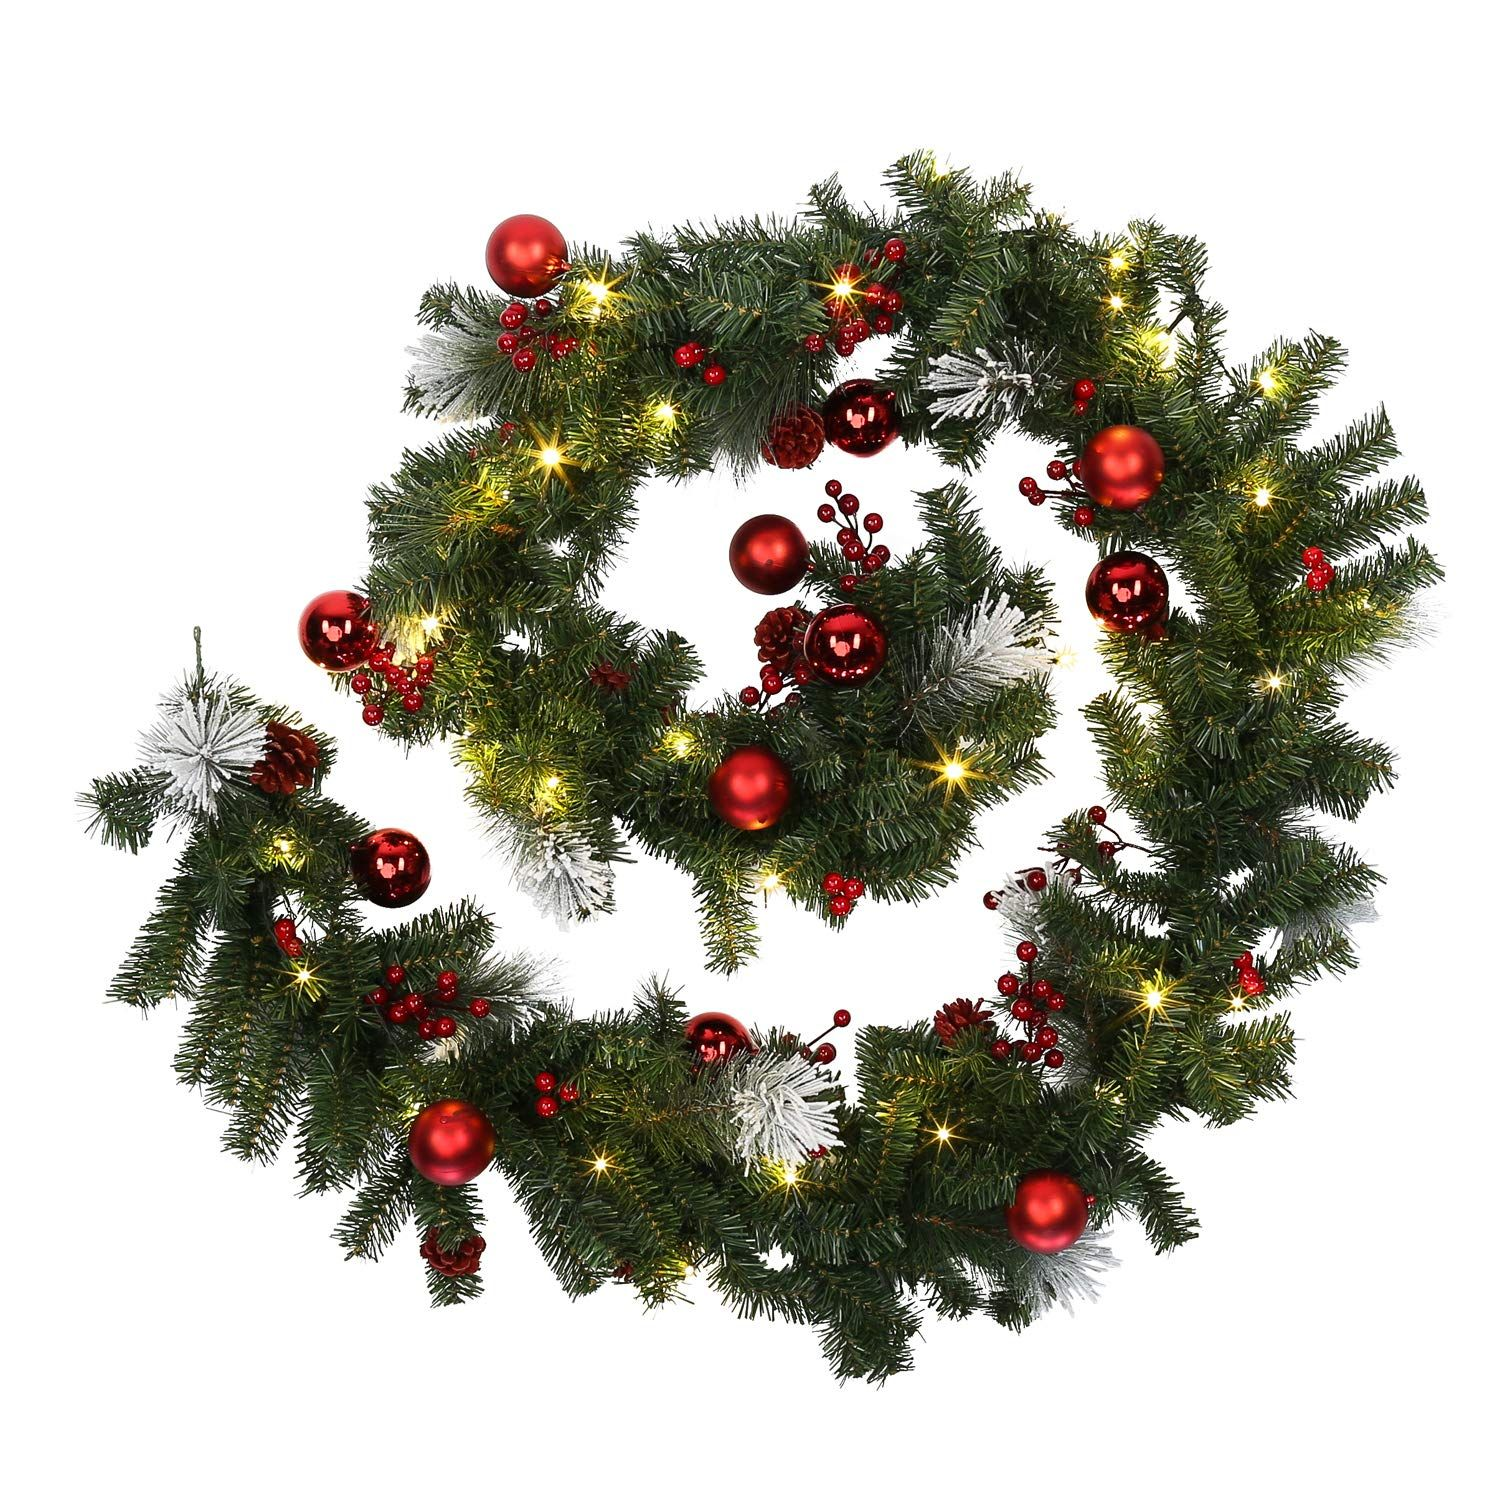 Jaymark Products Matching Red Green Christmas Garland Or Wreath Decorated With Pre Lit Led Warm Whi Red Green Christmas Christmas Decorations Christmas Garland